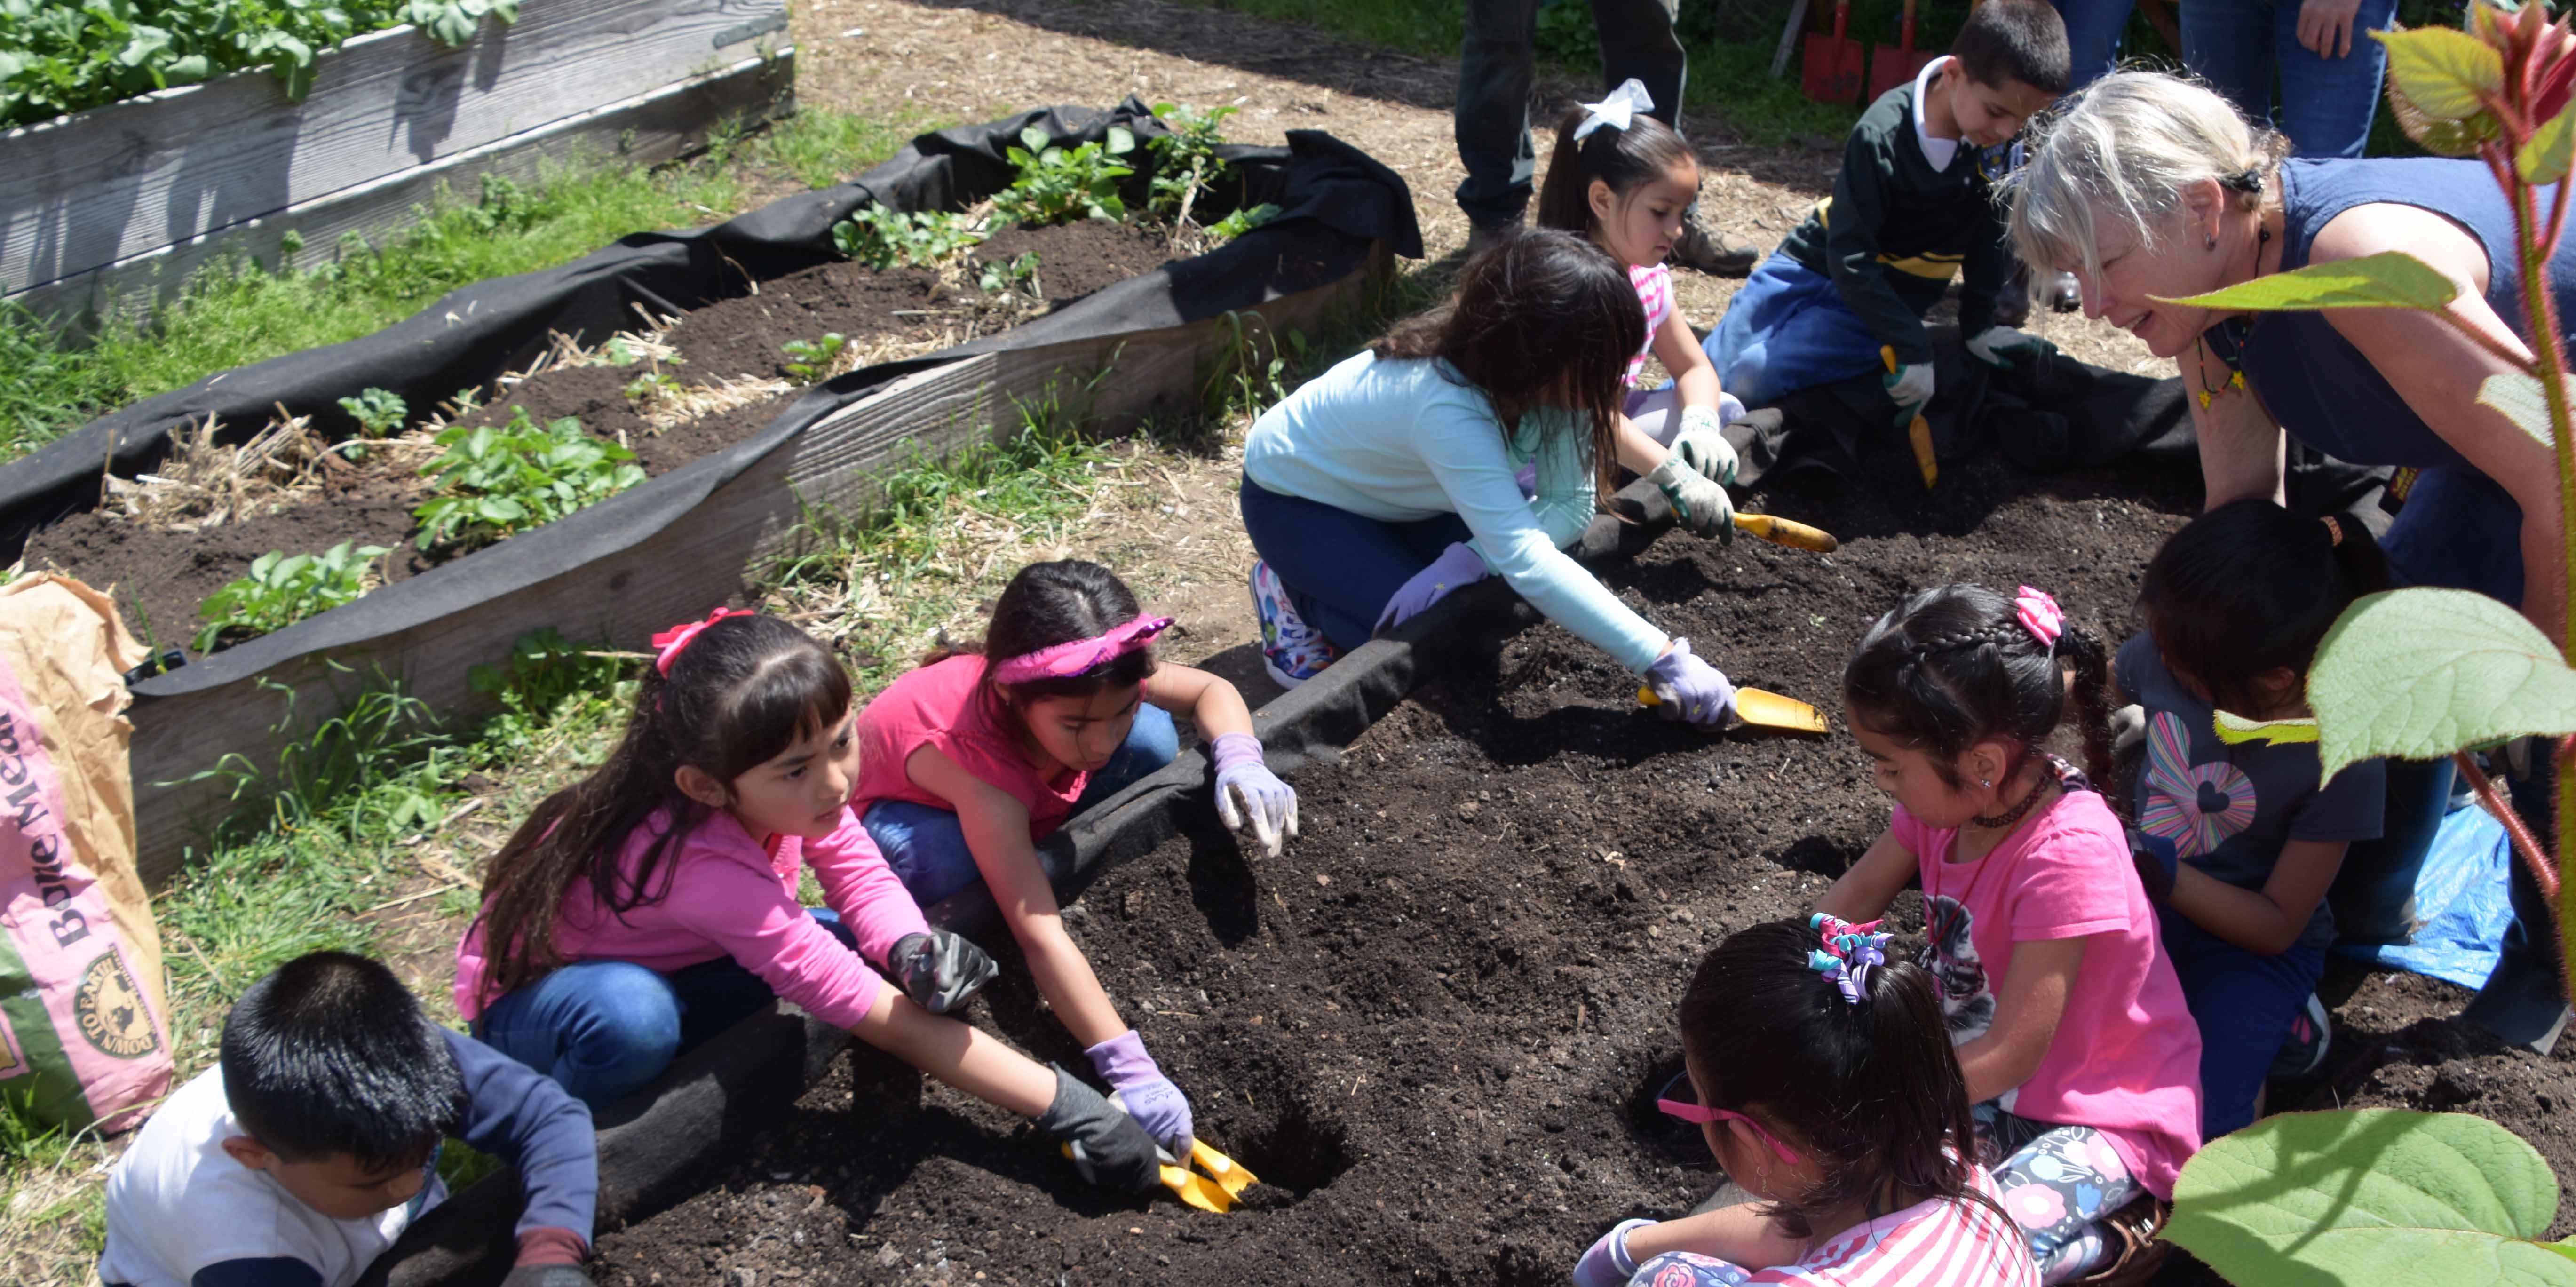 Steele Lane students preparing bed in Vicki's Garden